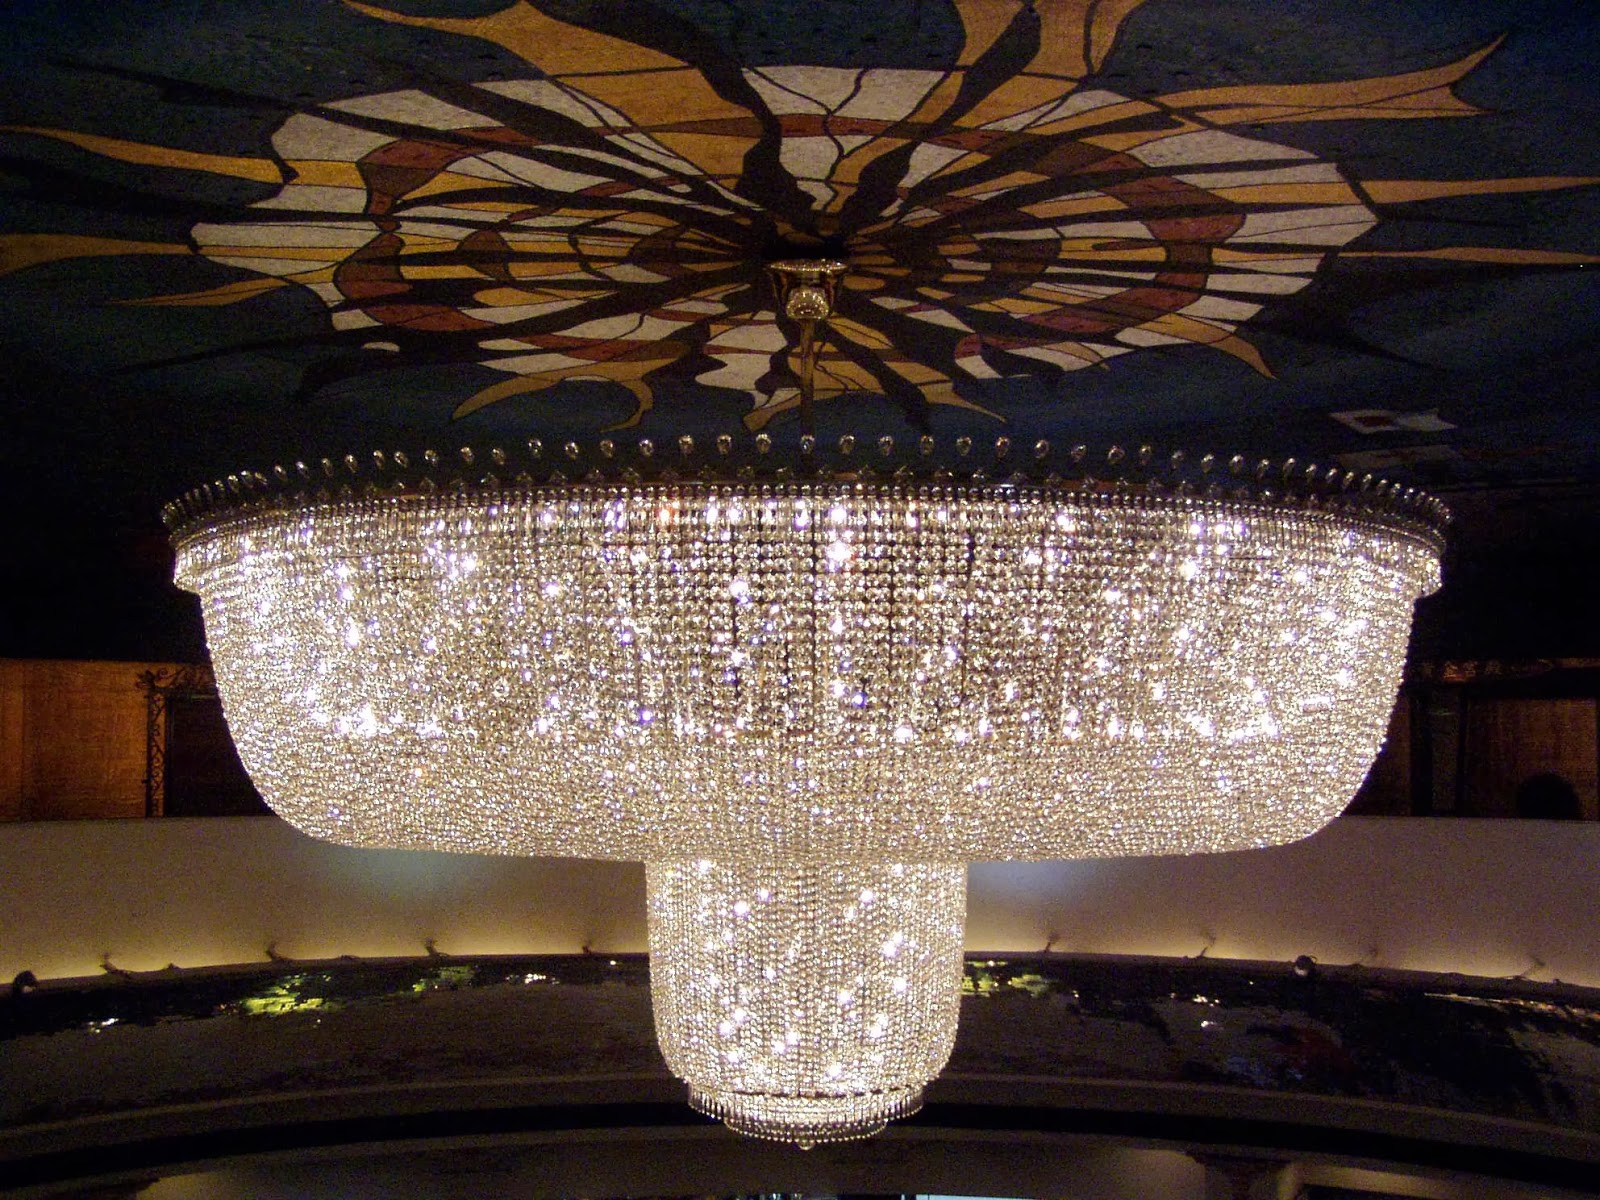 Macau Casino Chandelier